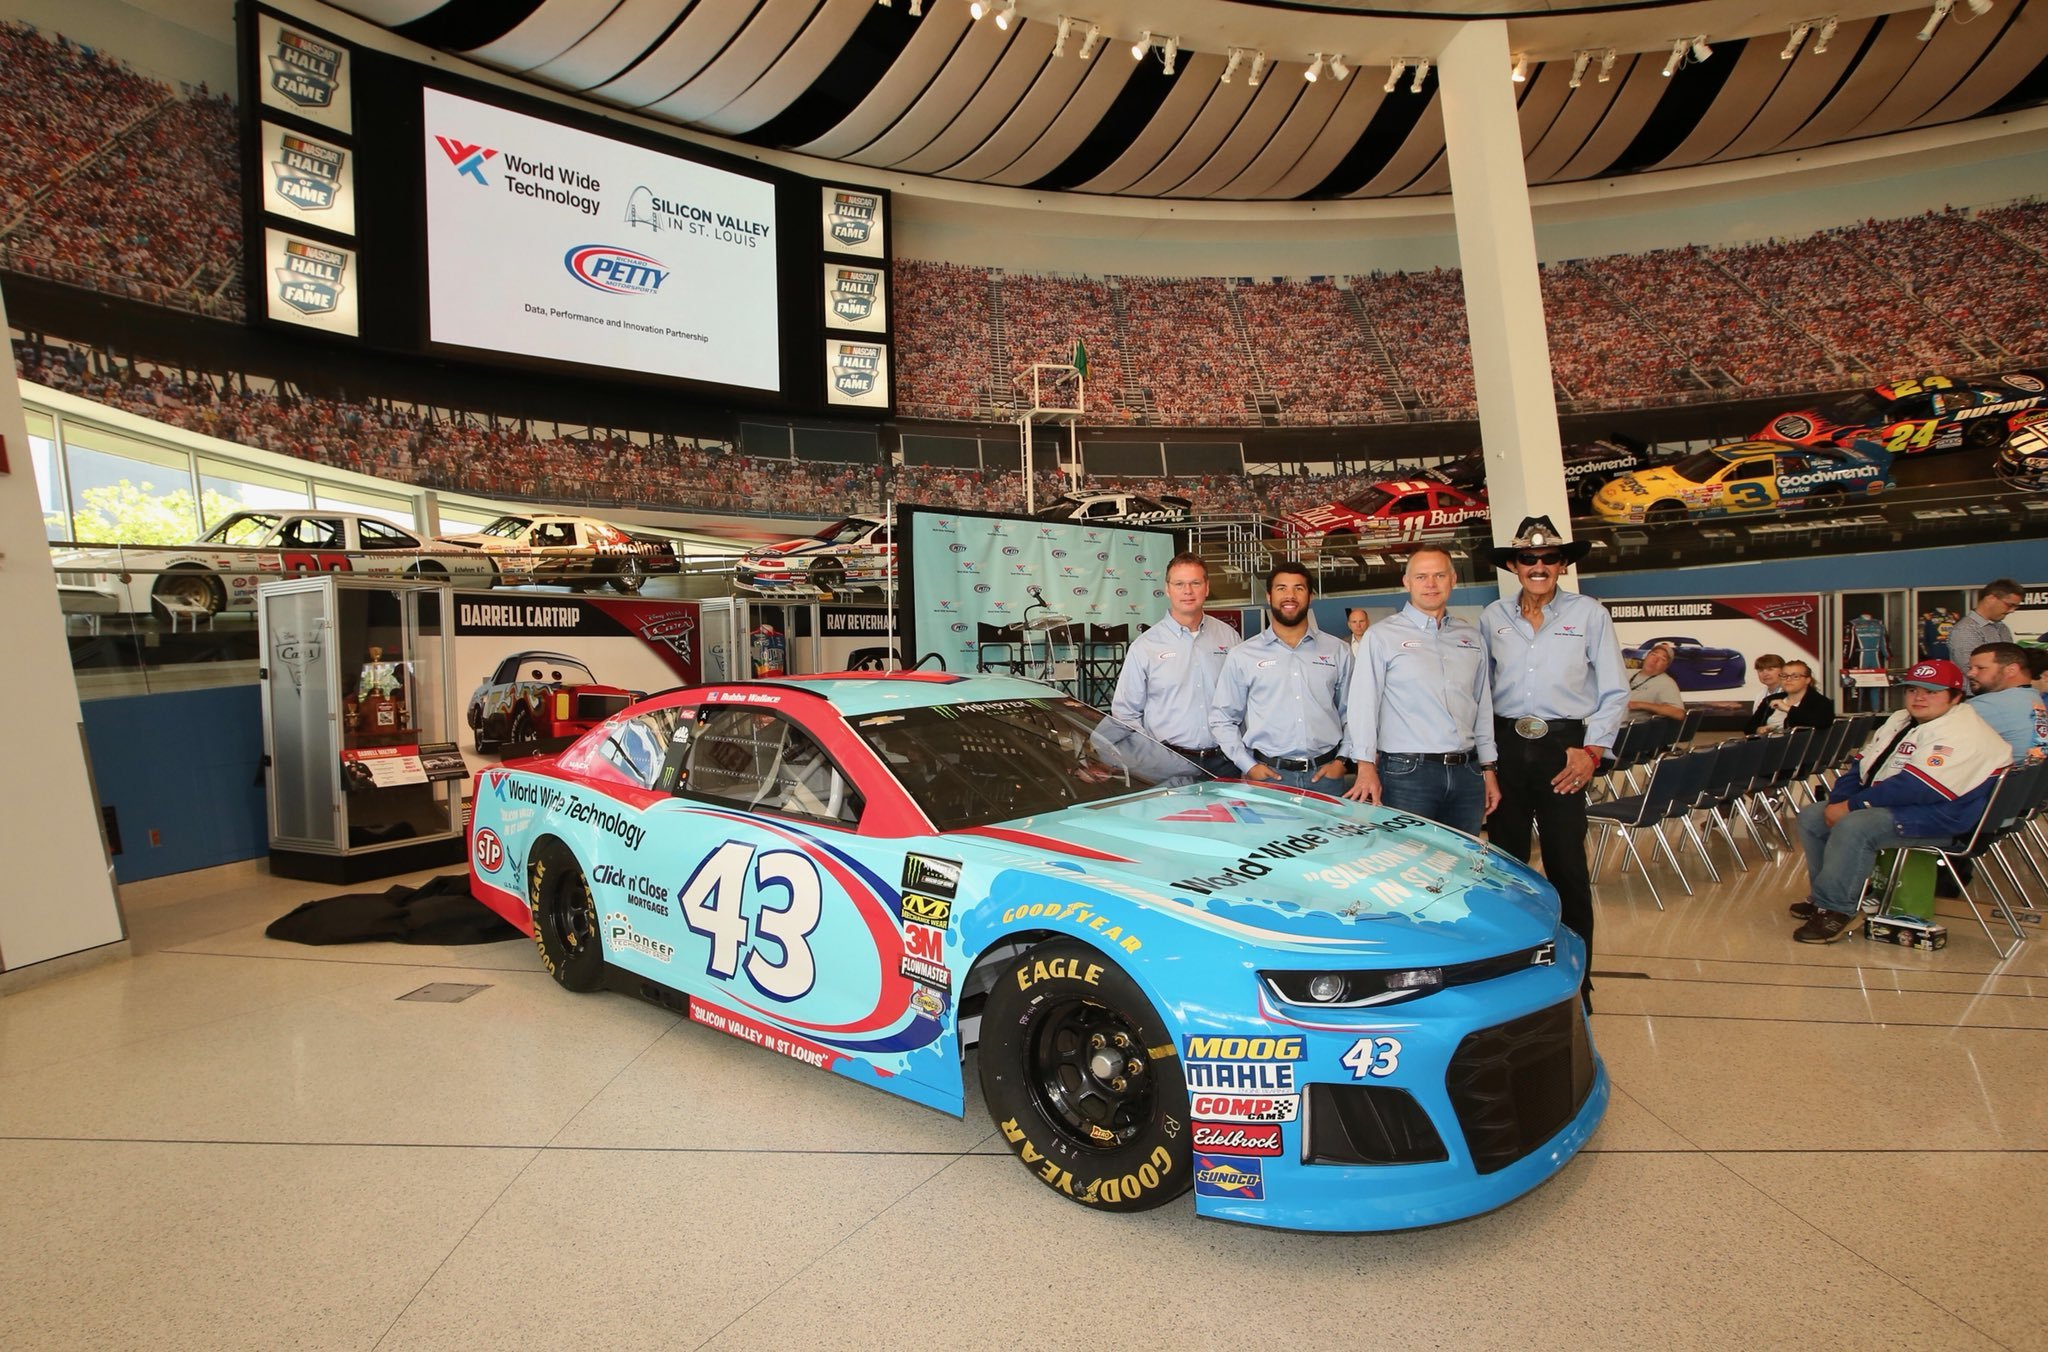 Richard Petty Motorsports >> Richard Petty Motorsports And World Wide Technology Announce New